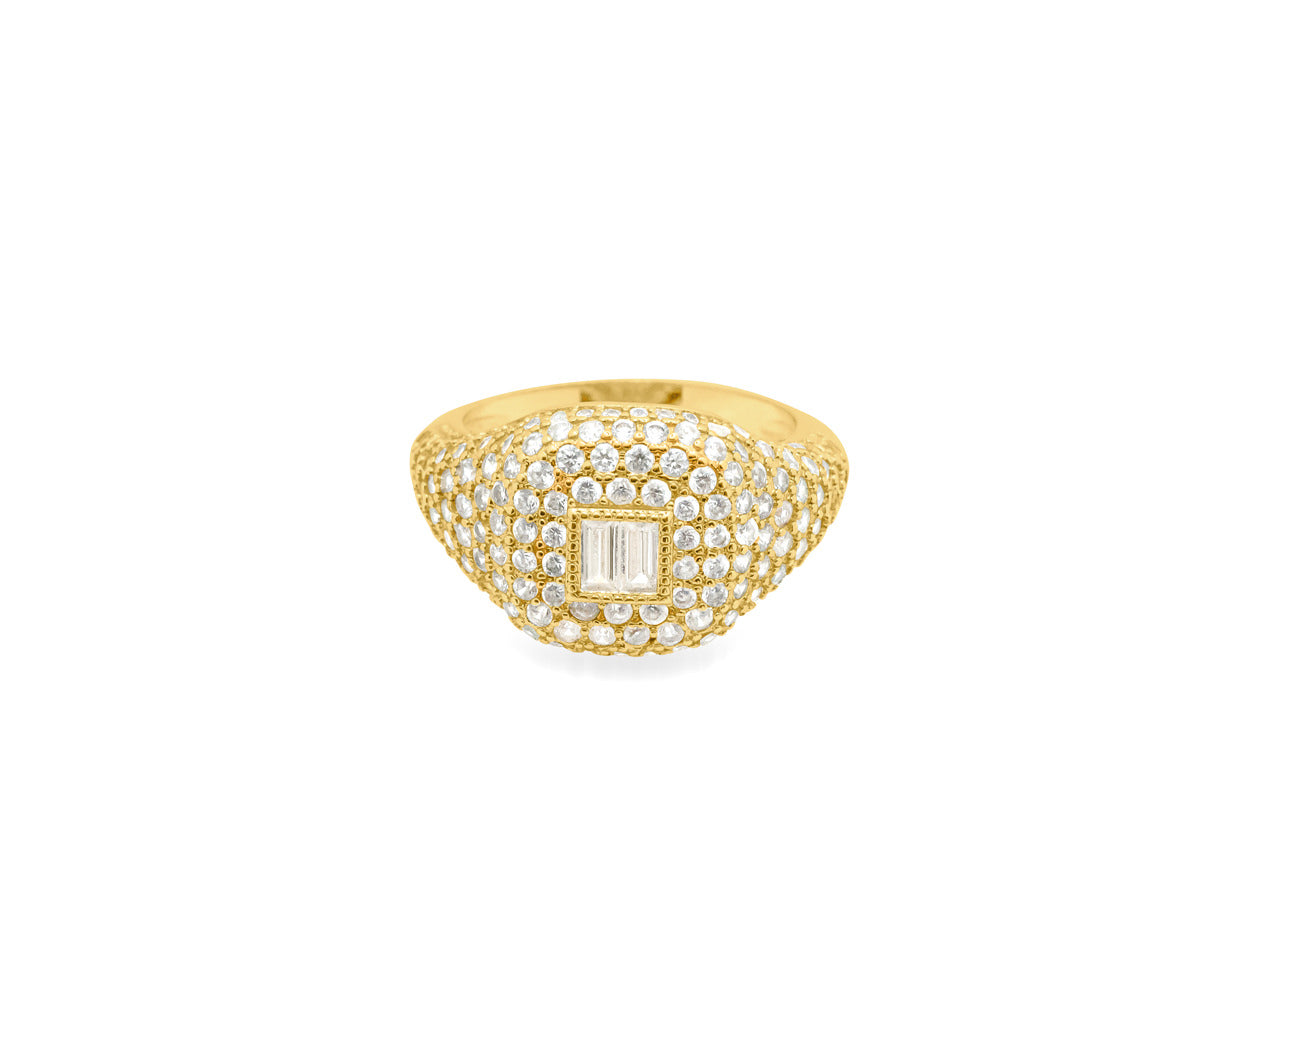 FAX Jewelry | 'Forever Thing' Micro Pave Ring | 18K Gold Plated with White Stones